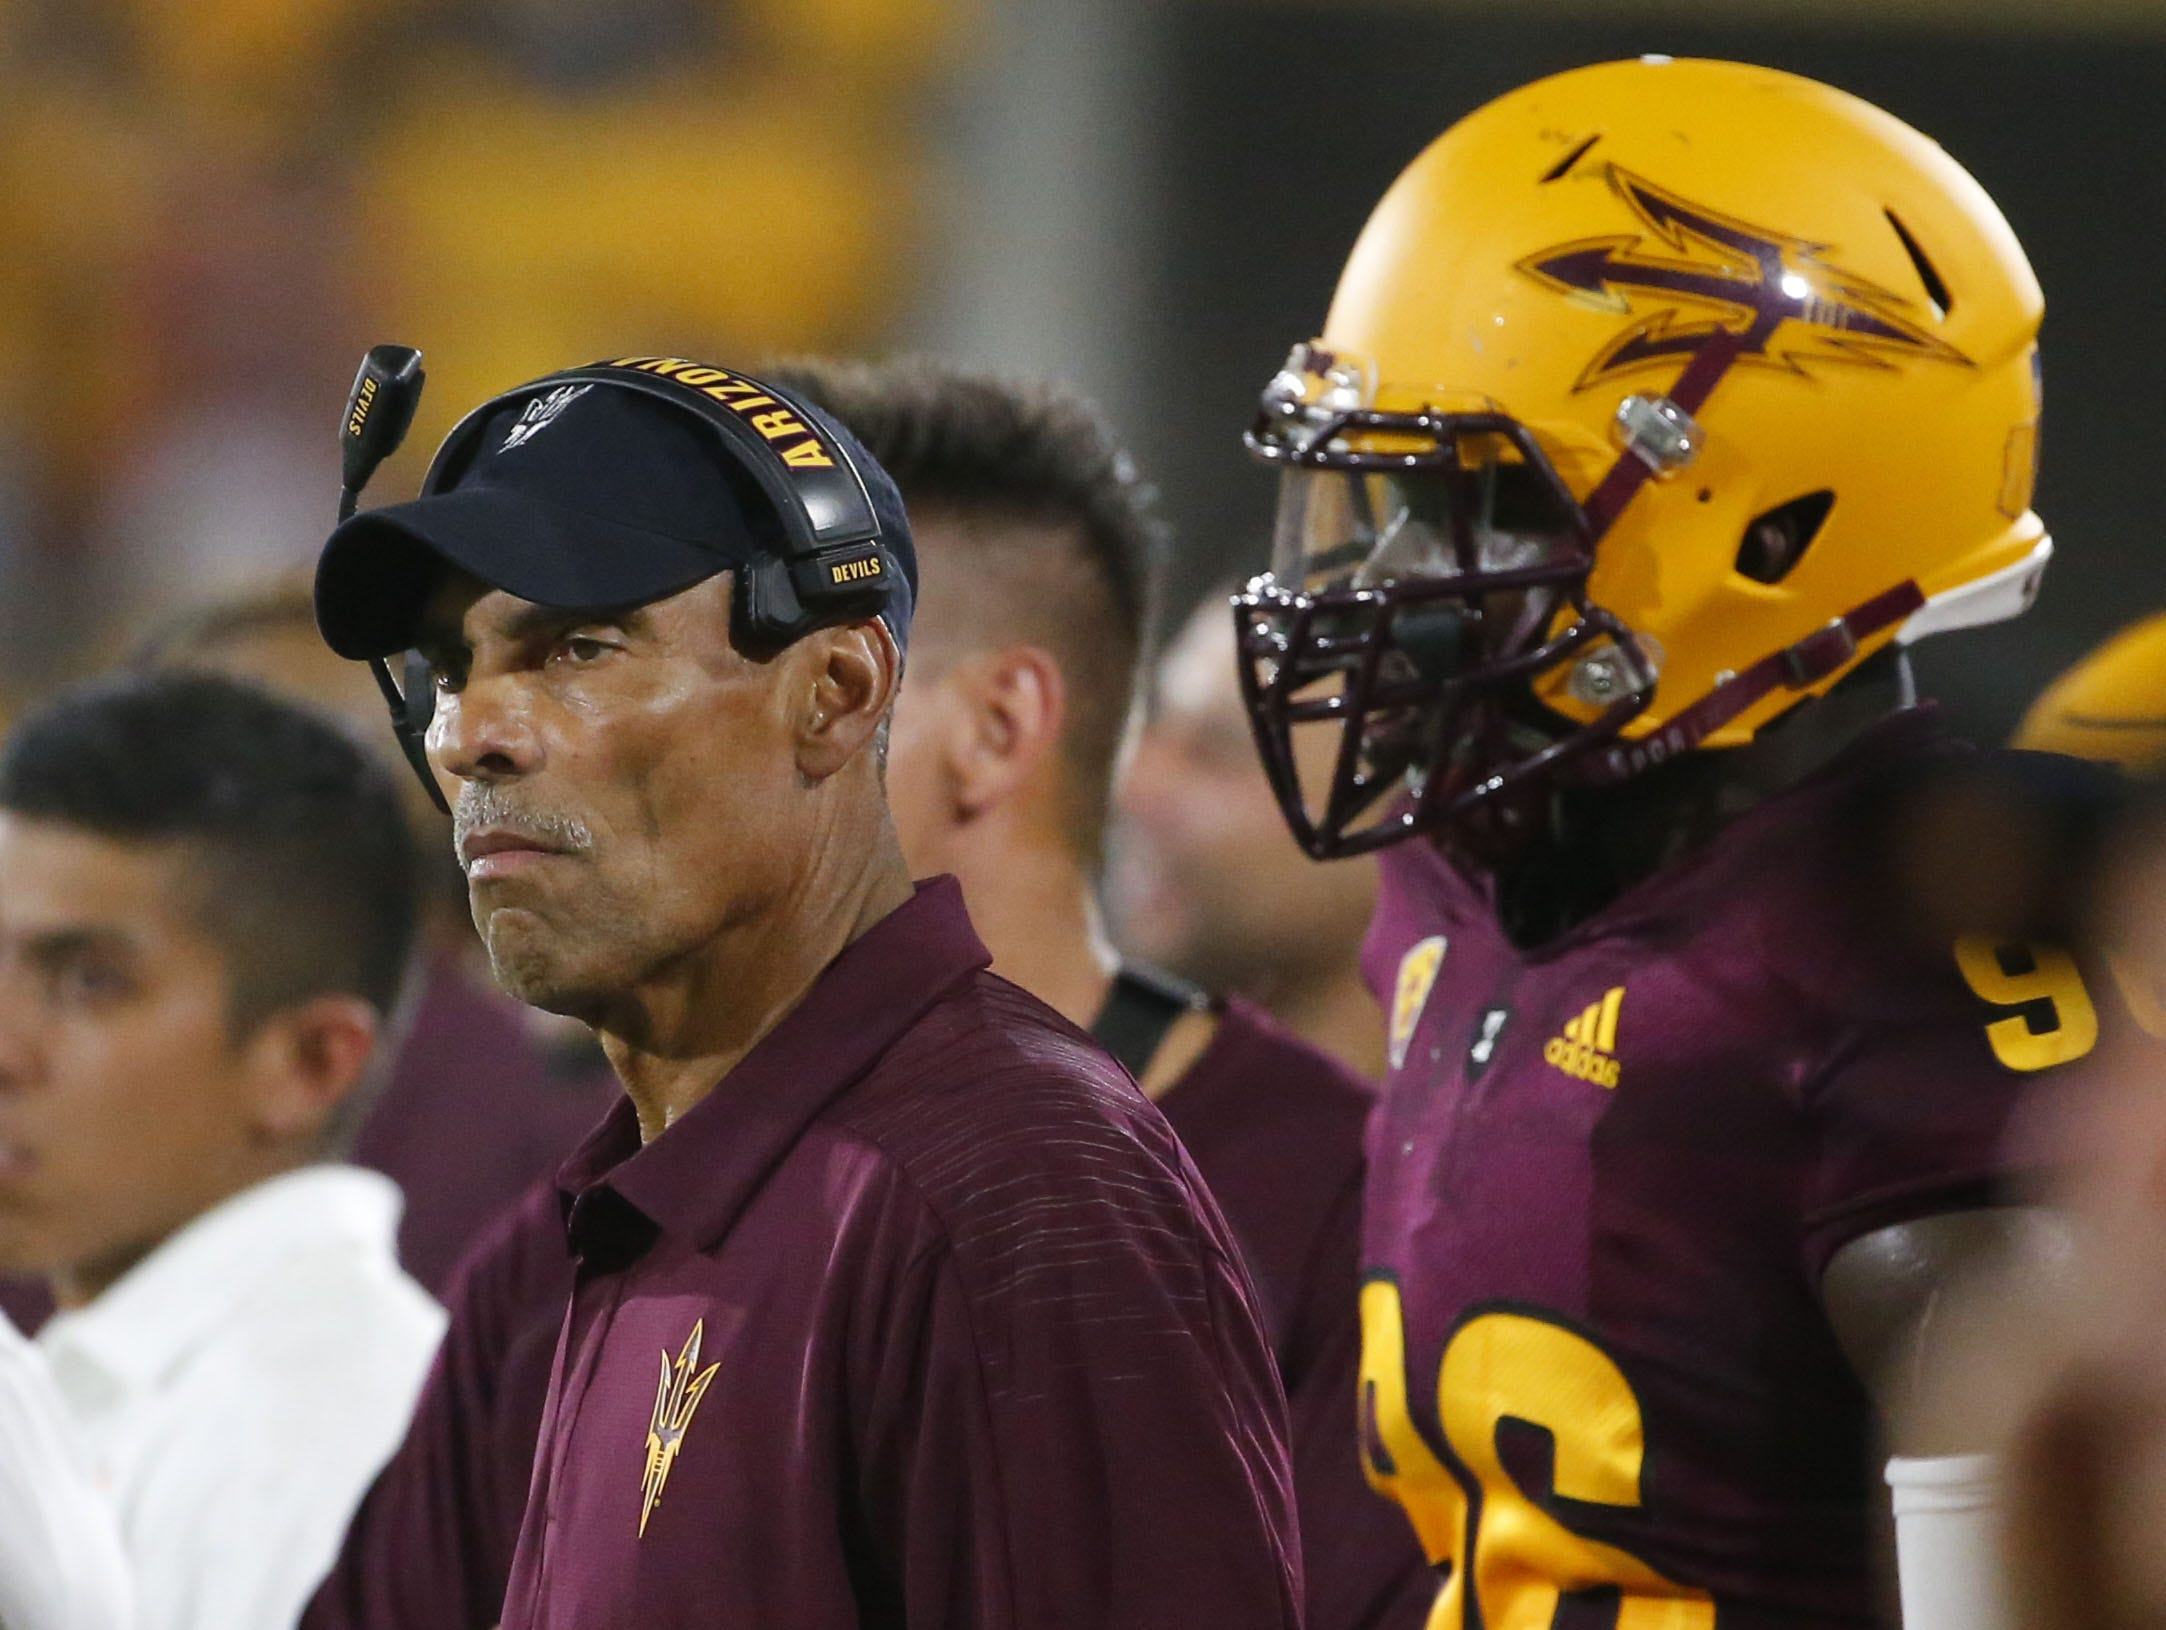 Arizona State Sun Devils head coach Herm Edwards watches from the sidelines during a football game  against the UTSA Roadrunners at Sun Devil Stadium in Tempe on September 1, 2018.